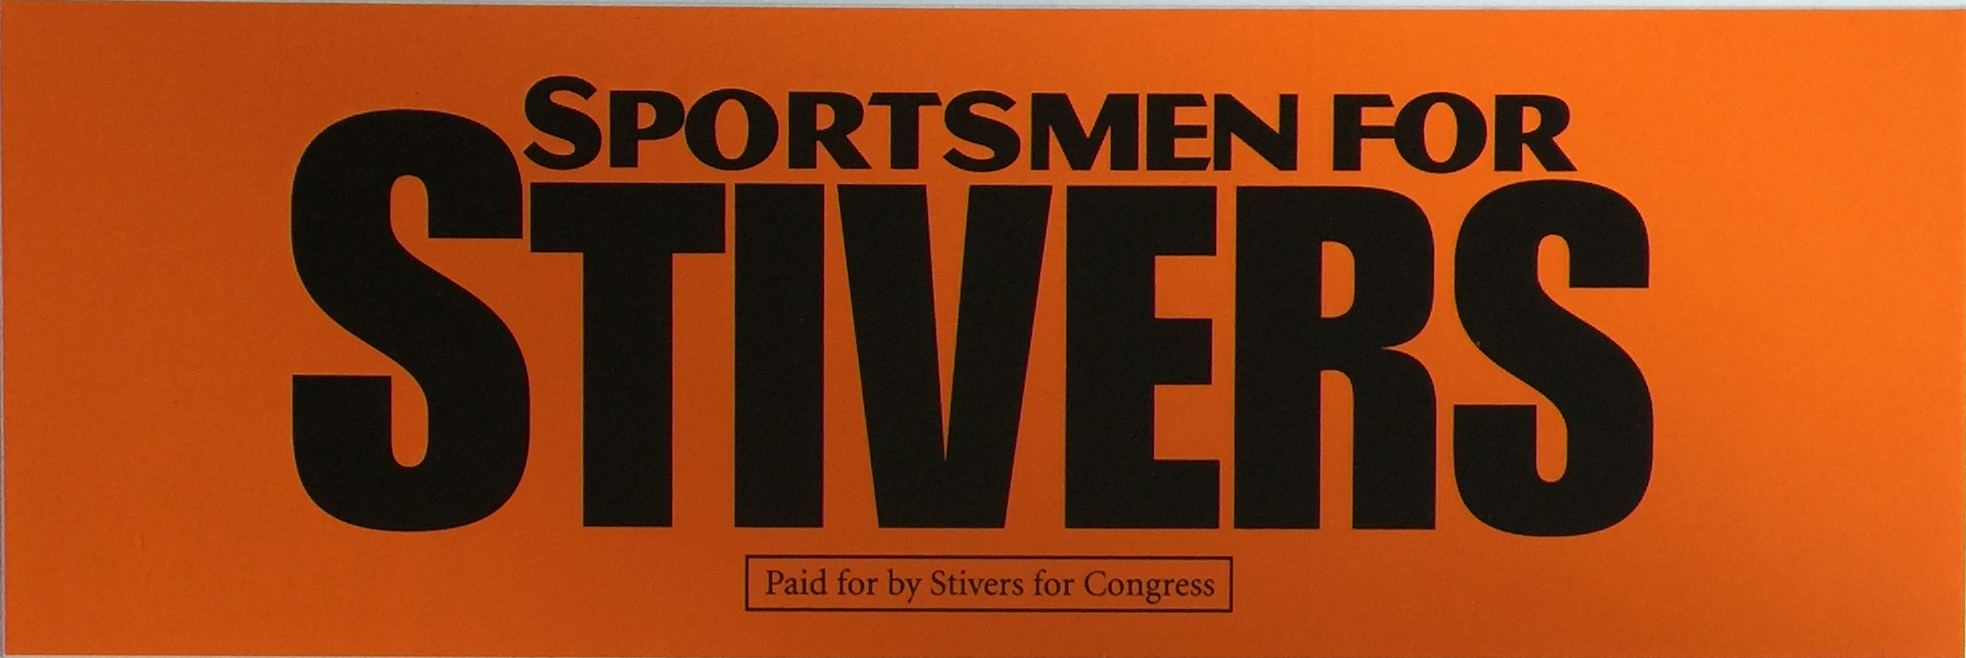 Sticker-congress STIVERS 1.jpg